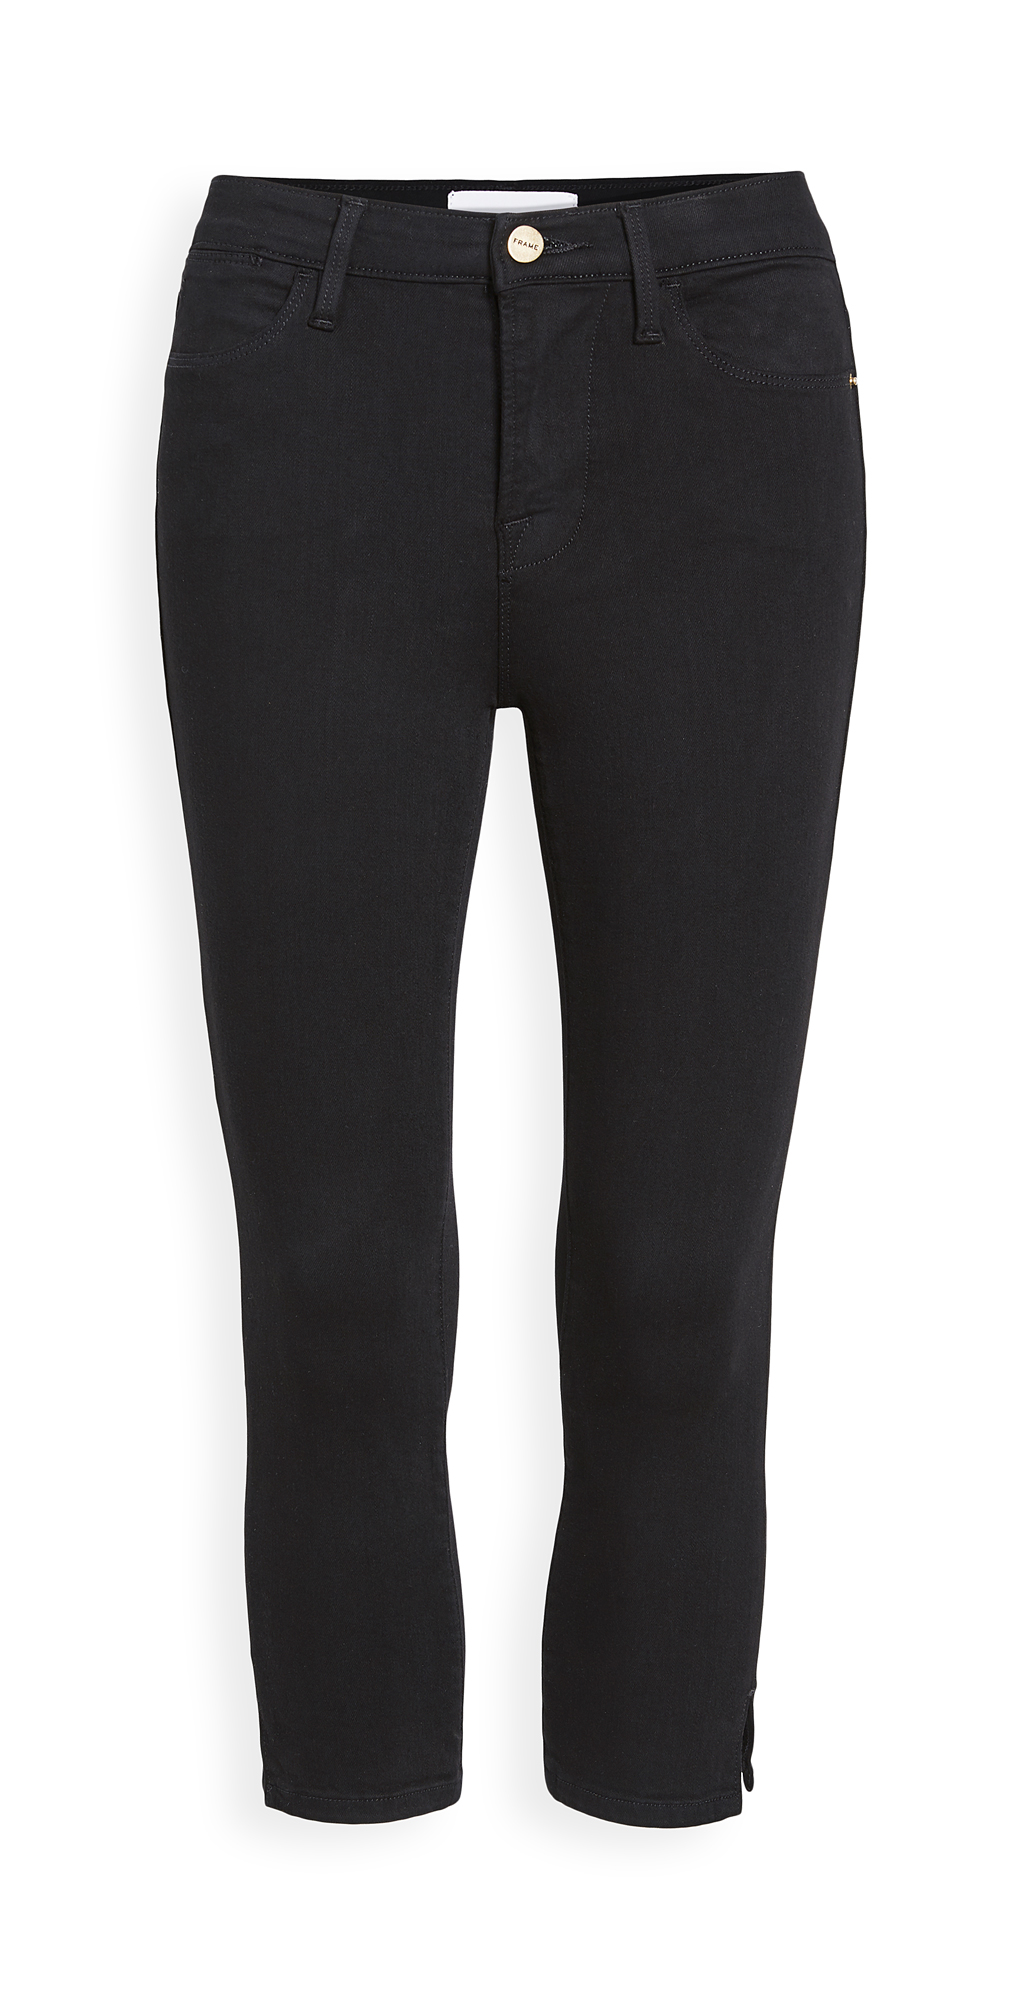 FRAME Le High Pedal Pusher Jeans